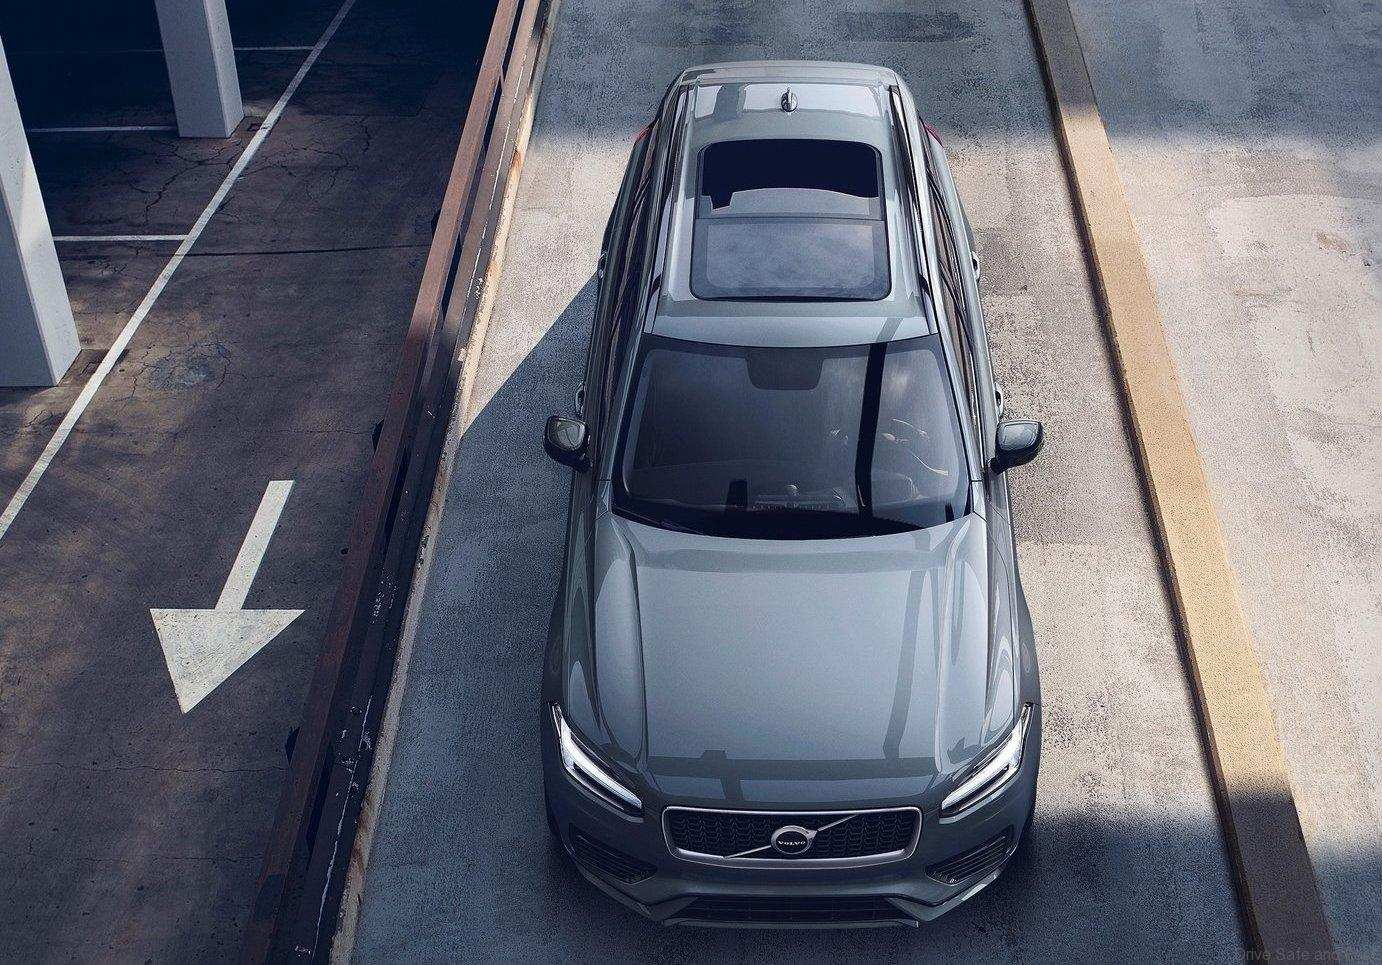 61 All New Volvo Strategy 2020 Exterior And Interior